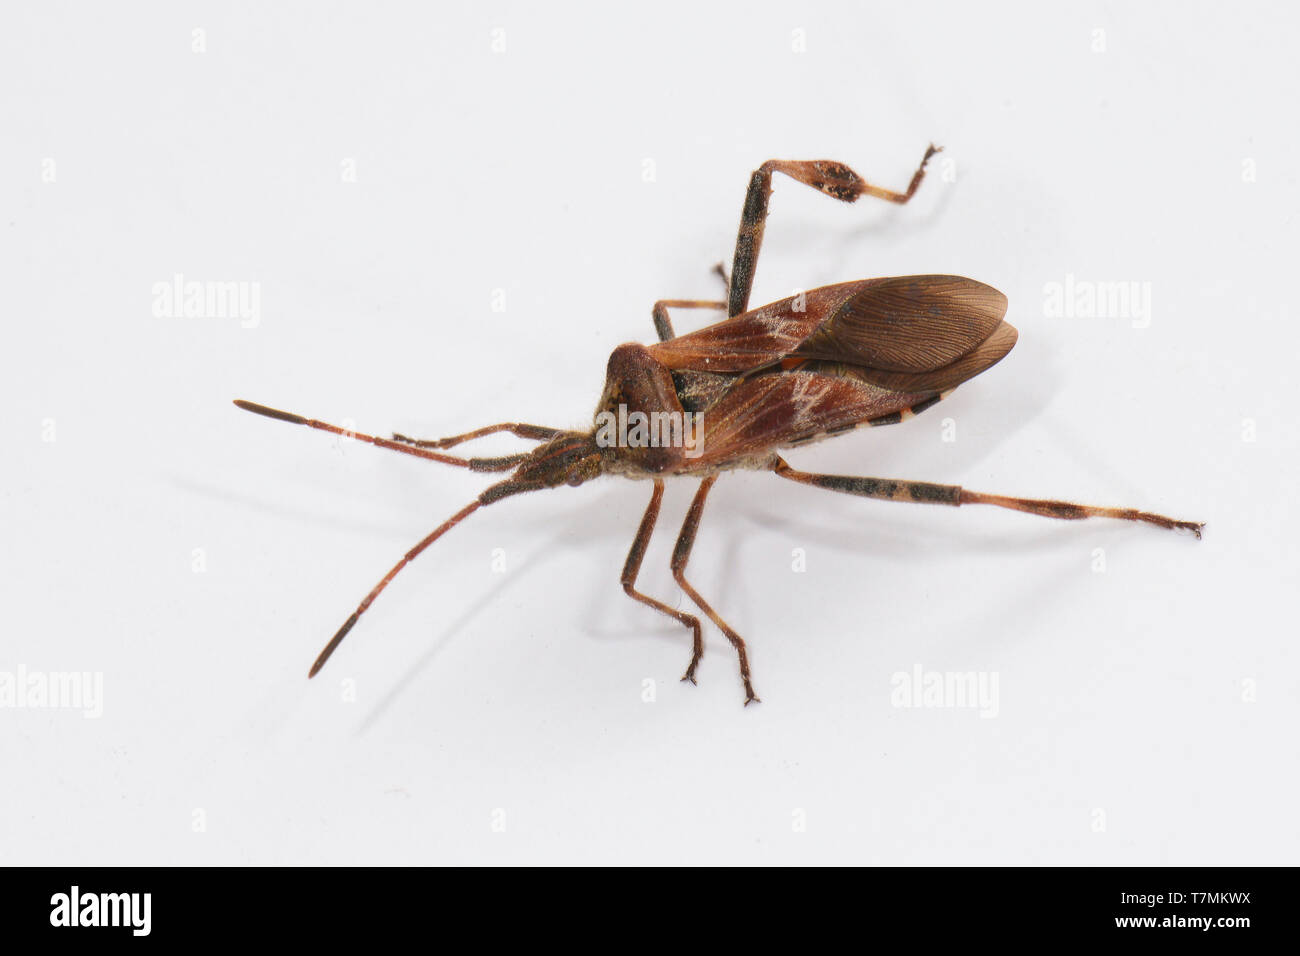 Western Conifer Seed Bug (Leptoglossus occidentalis). Adult isolated on white background. Germany - Stock Image